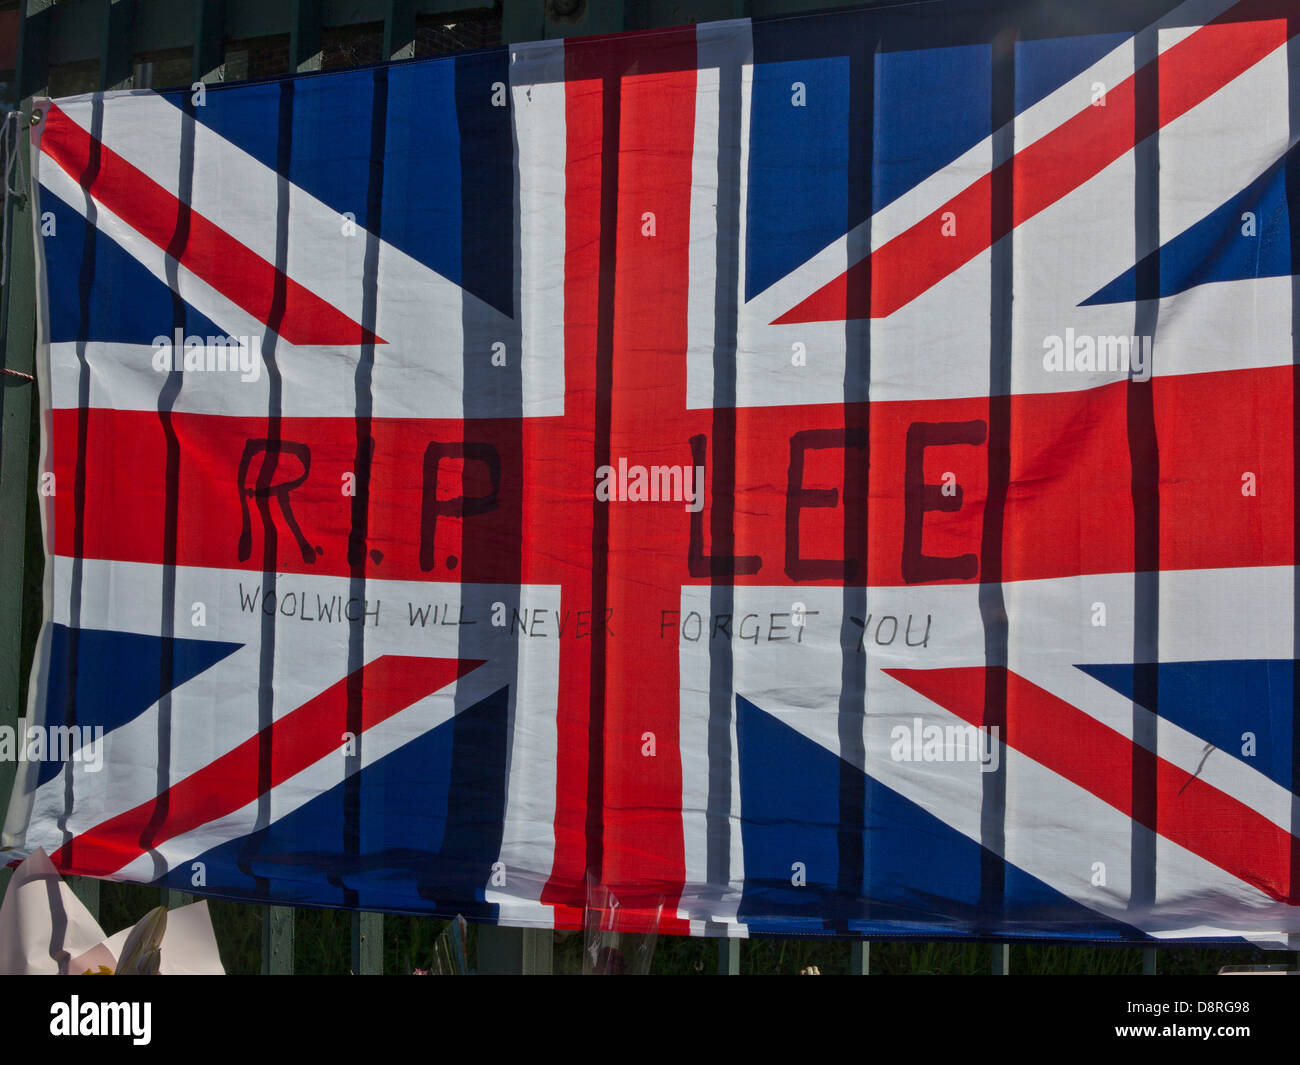 Union Jack flag and floral tributes to Drummer Lee Rigby, killed outside Woolwich Barracks in London on May 22  - Stock Image